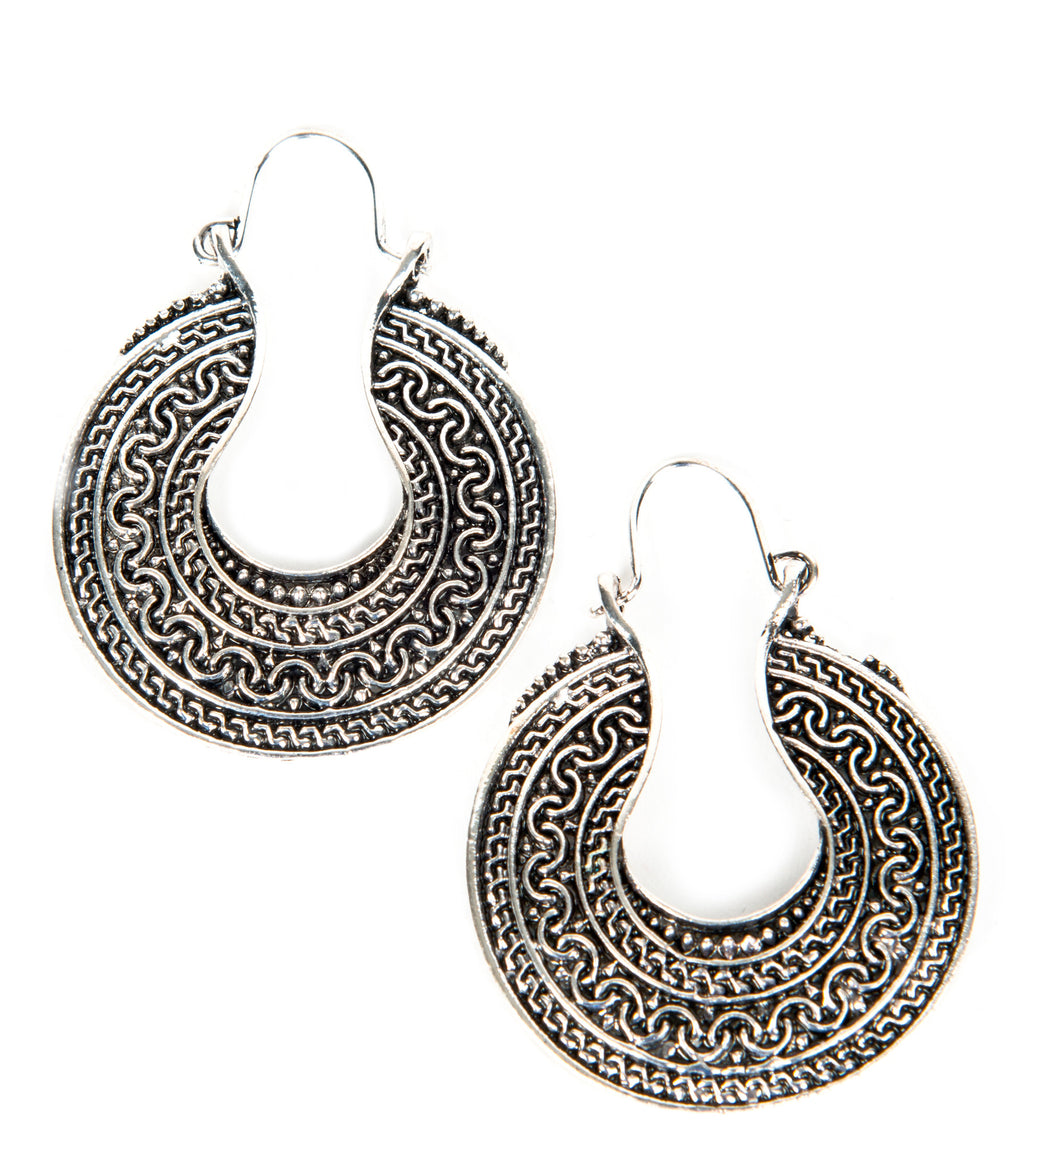 Dakota Silver Earrings - TAIGS000